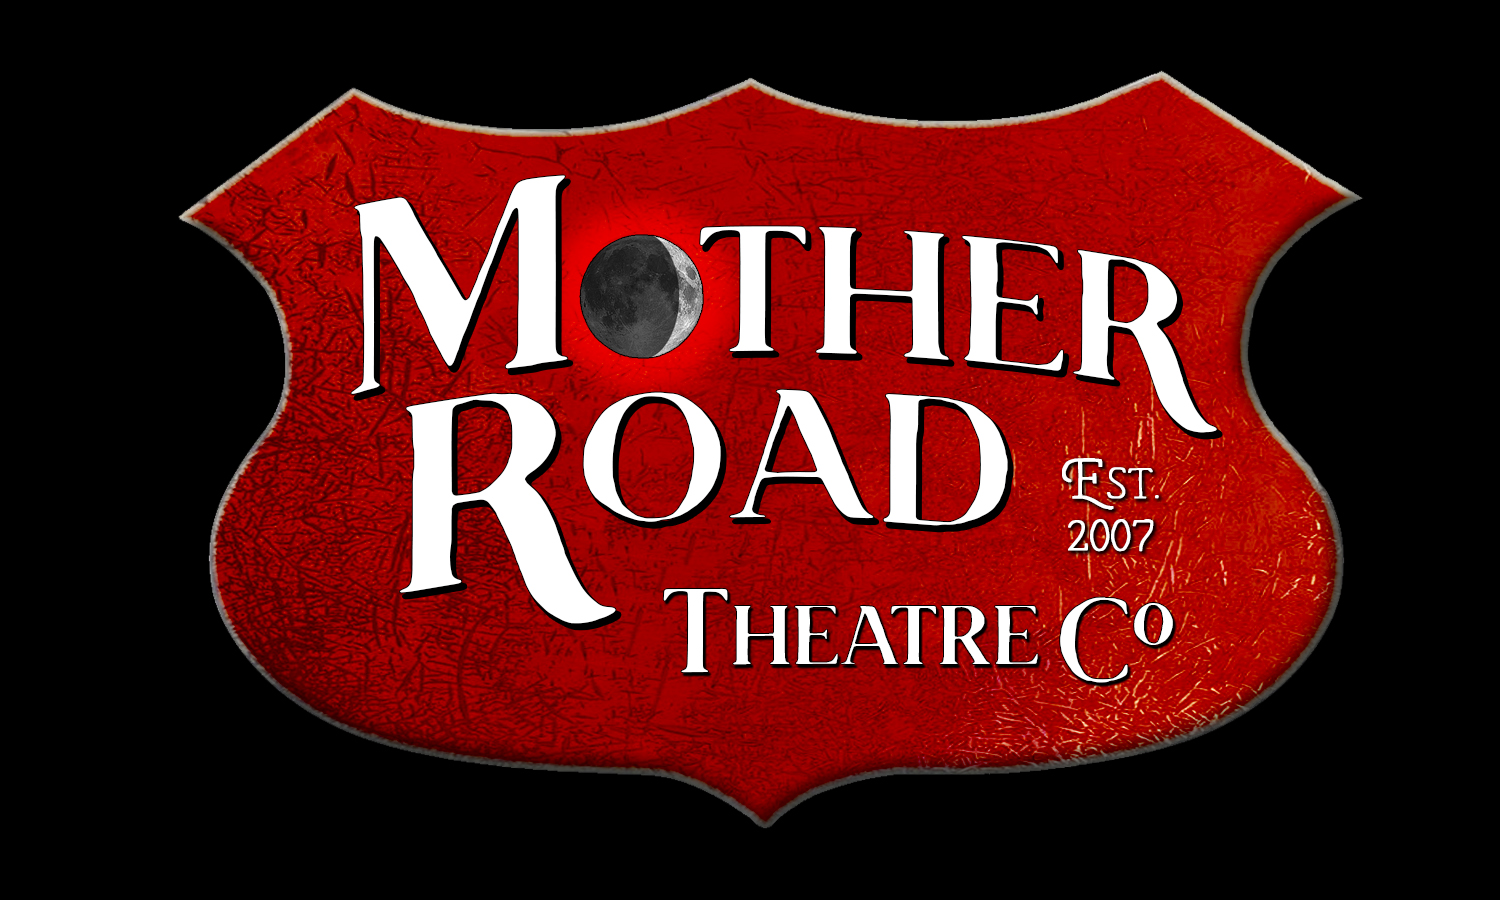 Mother Road Theatre Company